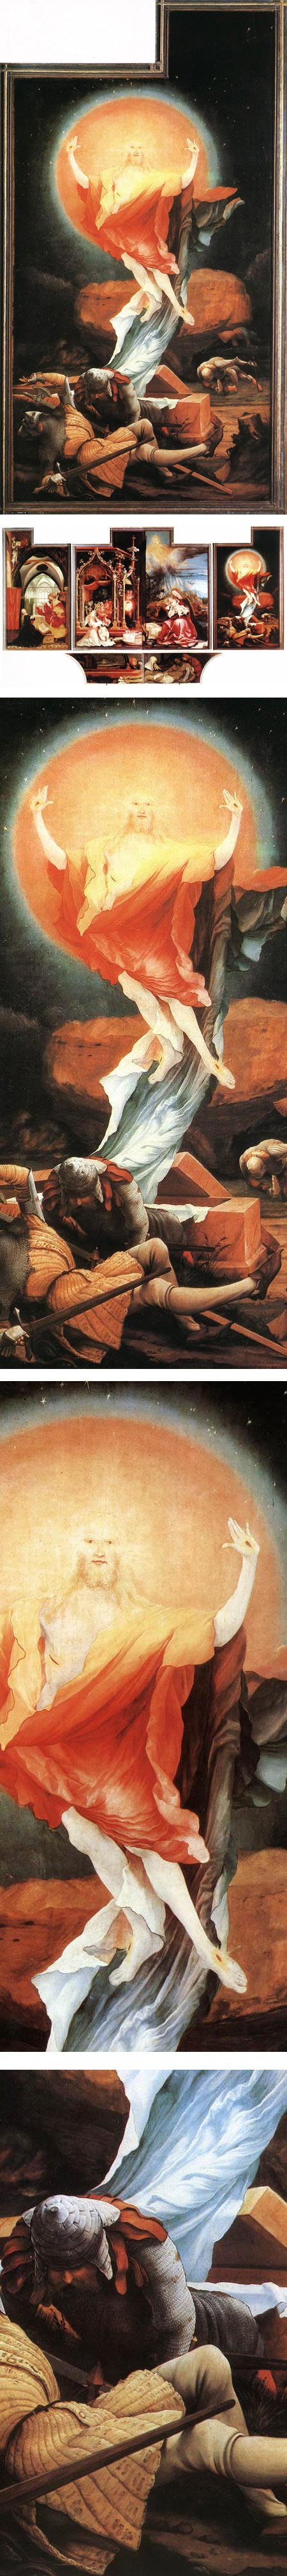 The Resurrection, from the Isenheim Altarpiece, Matthias Grunewald